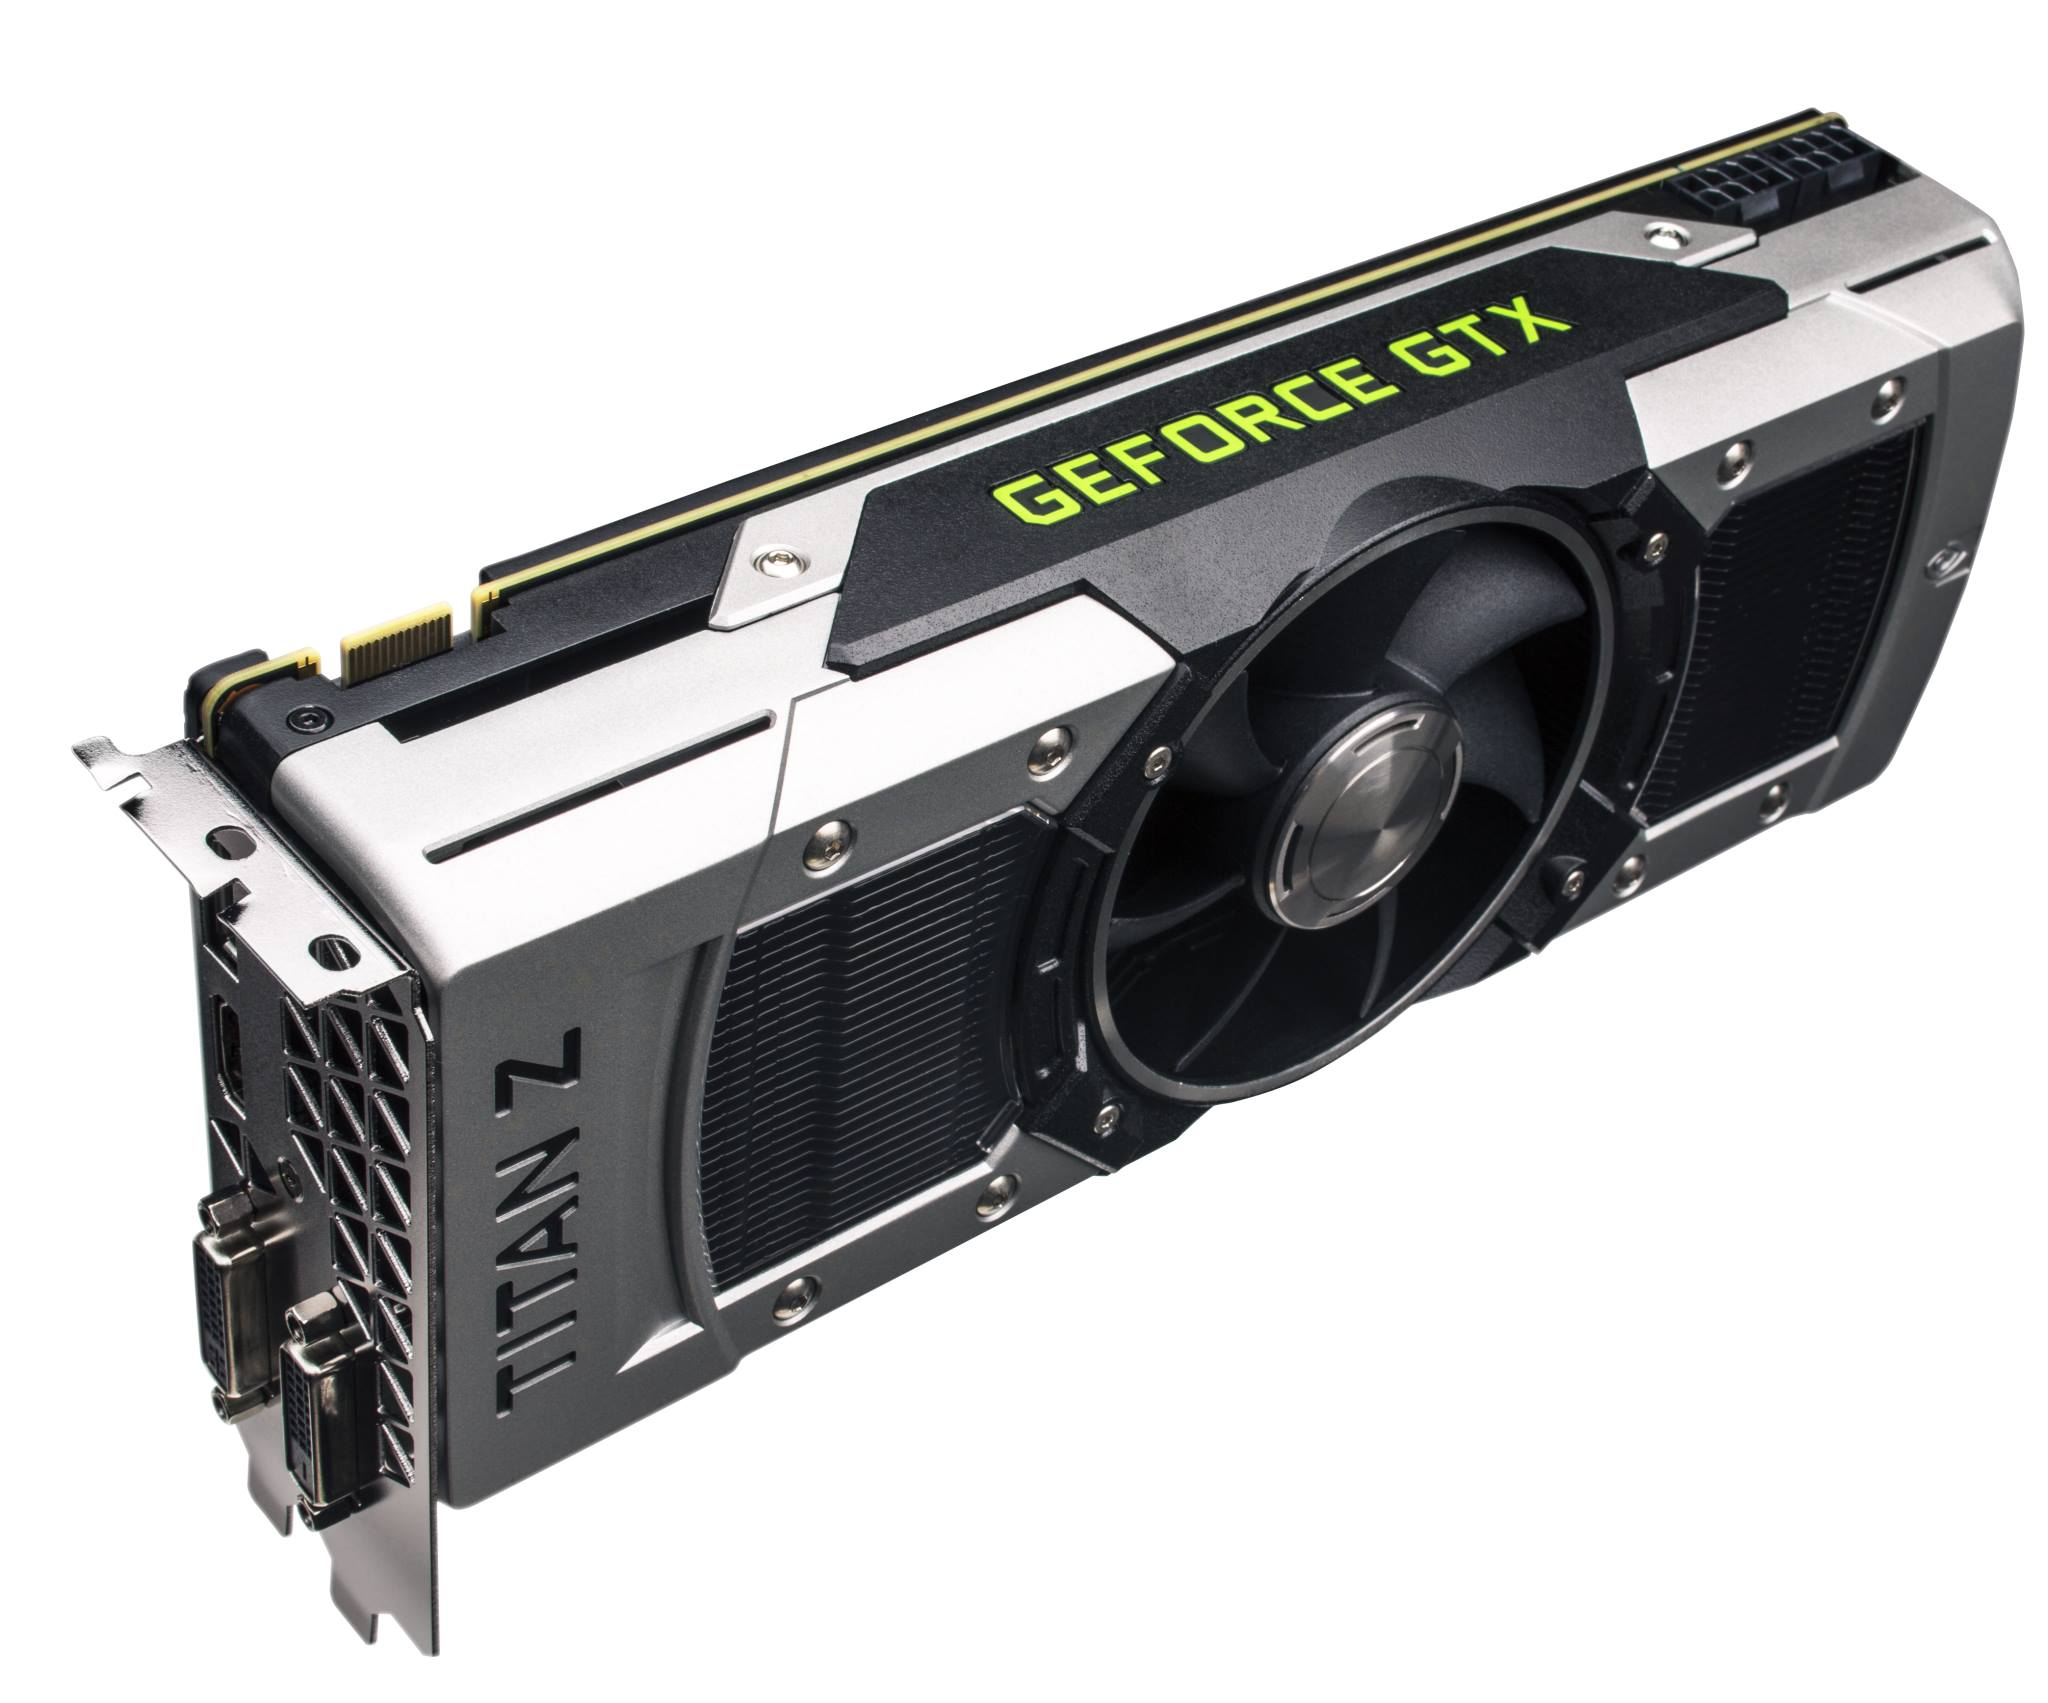 NVIDIA GeForce GTX Titan Z Can Boost Up To 1058 MHz - Card Was Postponed Due To Unfinished Driver